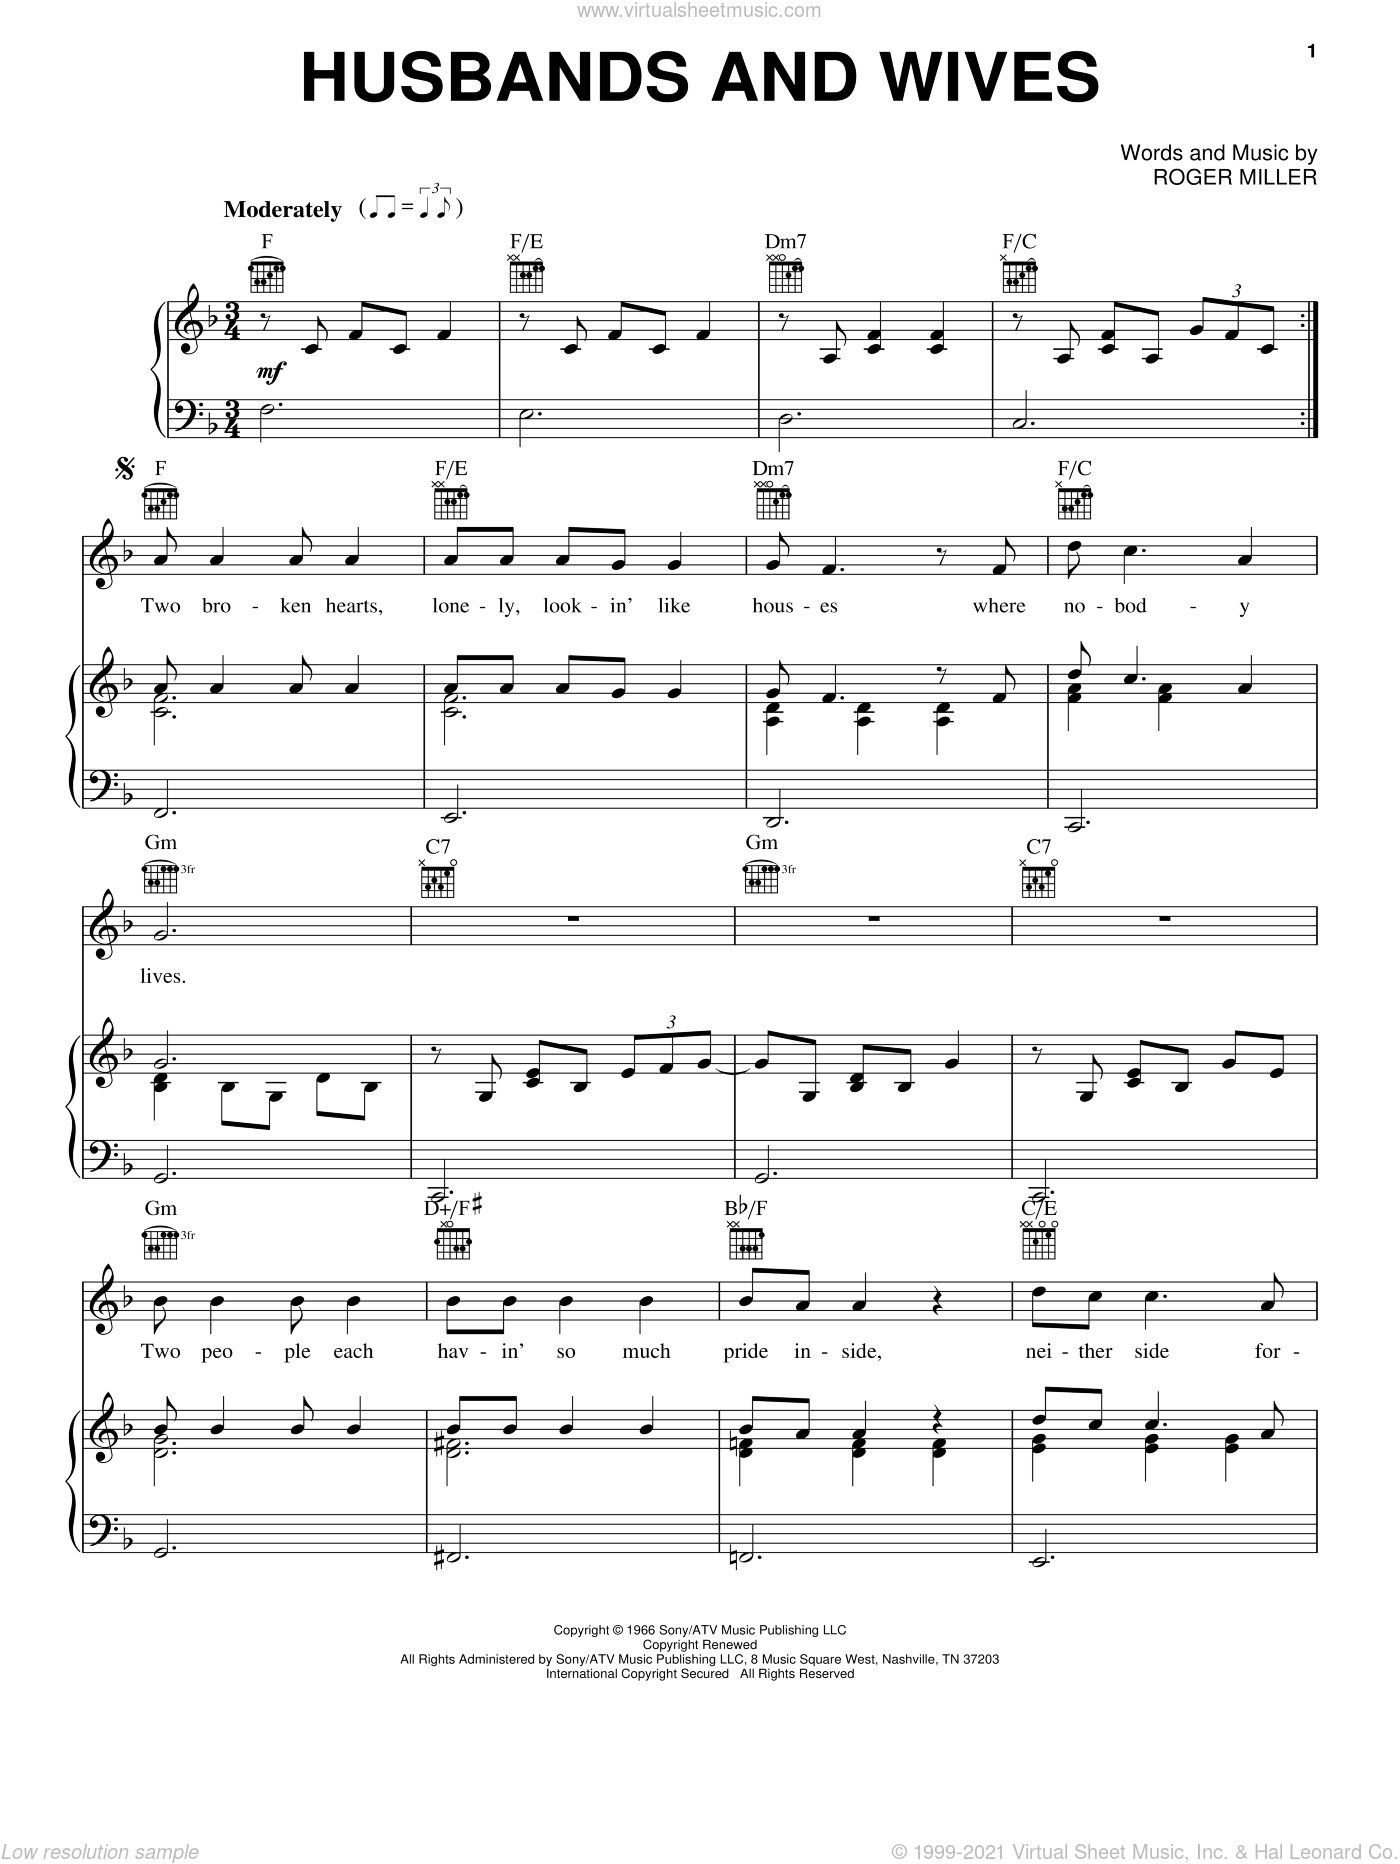 Husbands And Wives sheet music for voice, piano or guitar by Roger Miller and Brooks & Dunn. Score Image Preview.